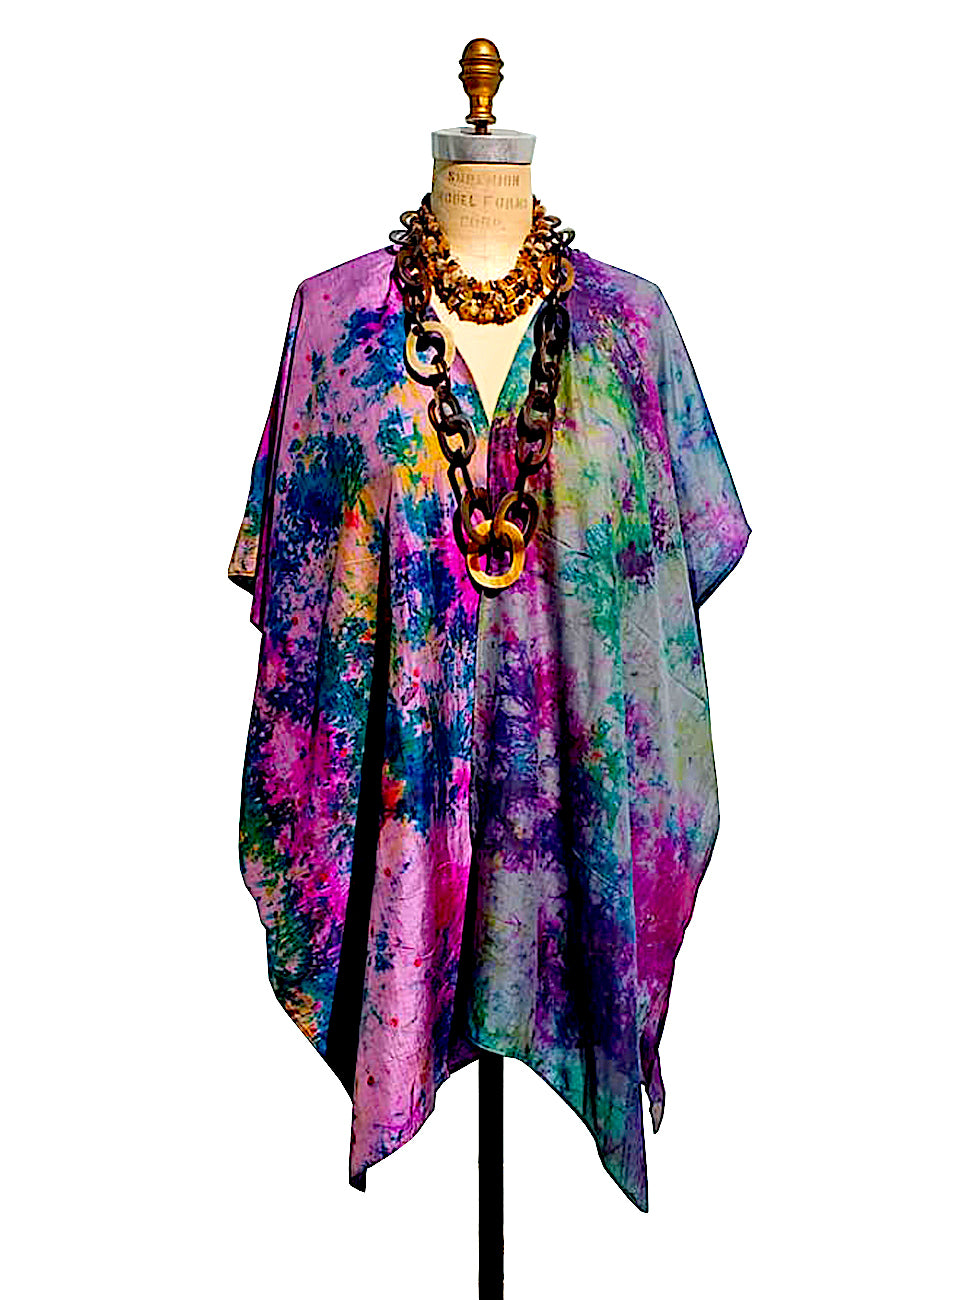 Silk Cape Almost Famous Collection - Meryl Streep